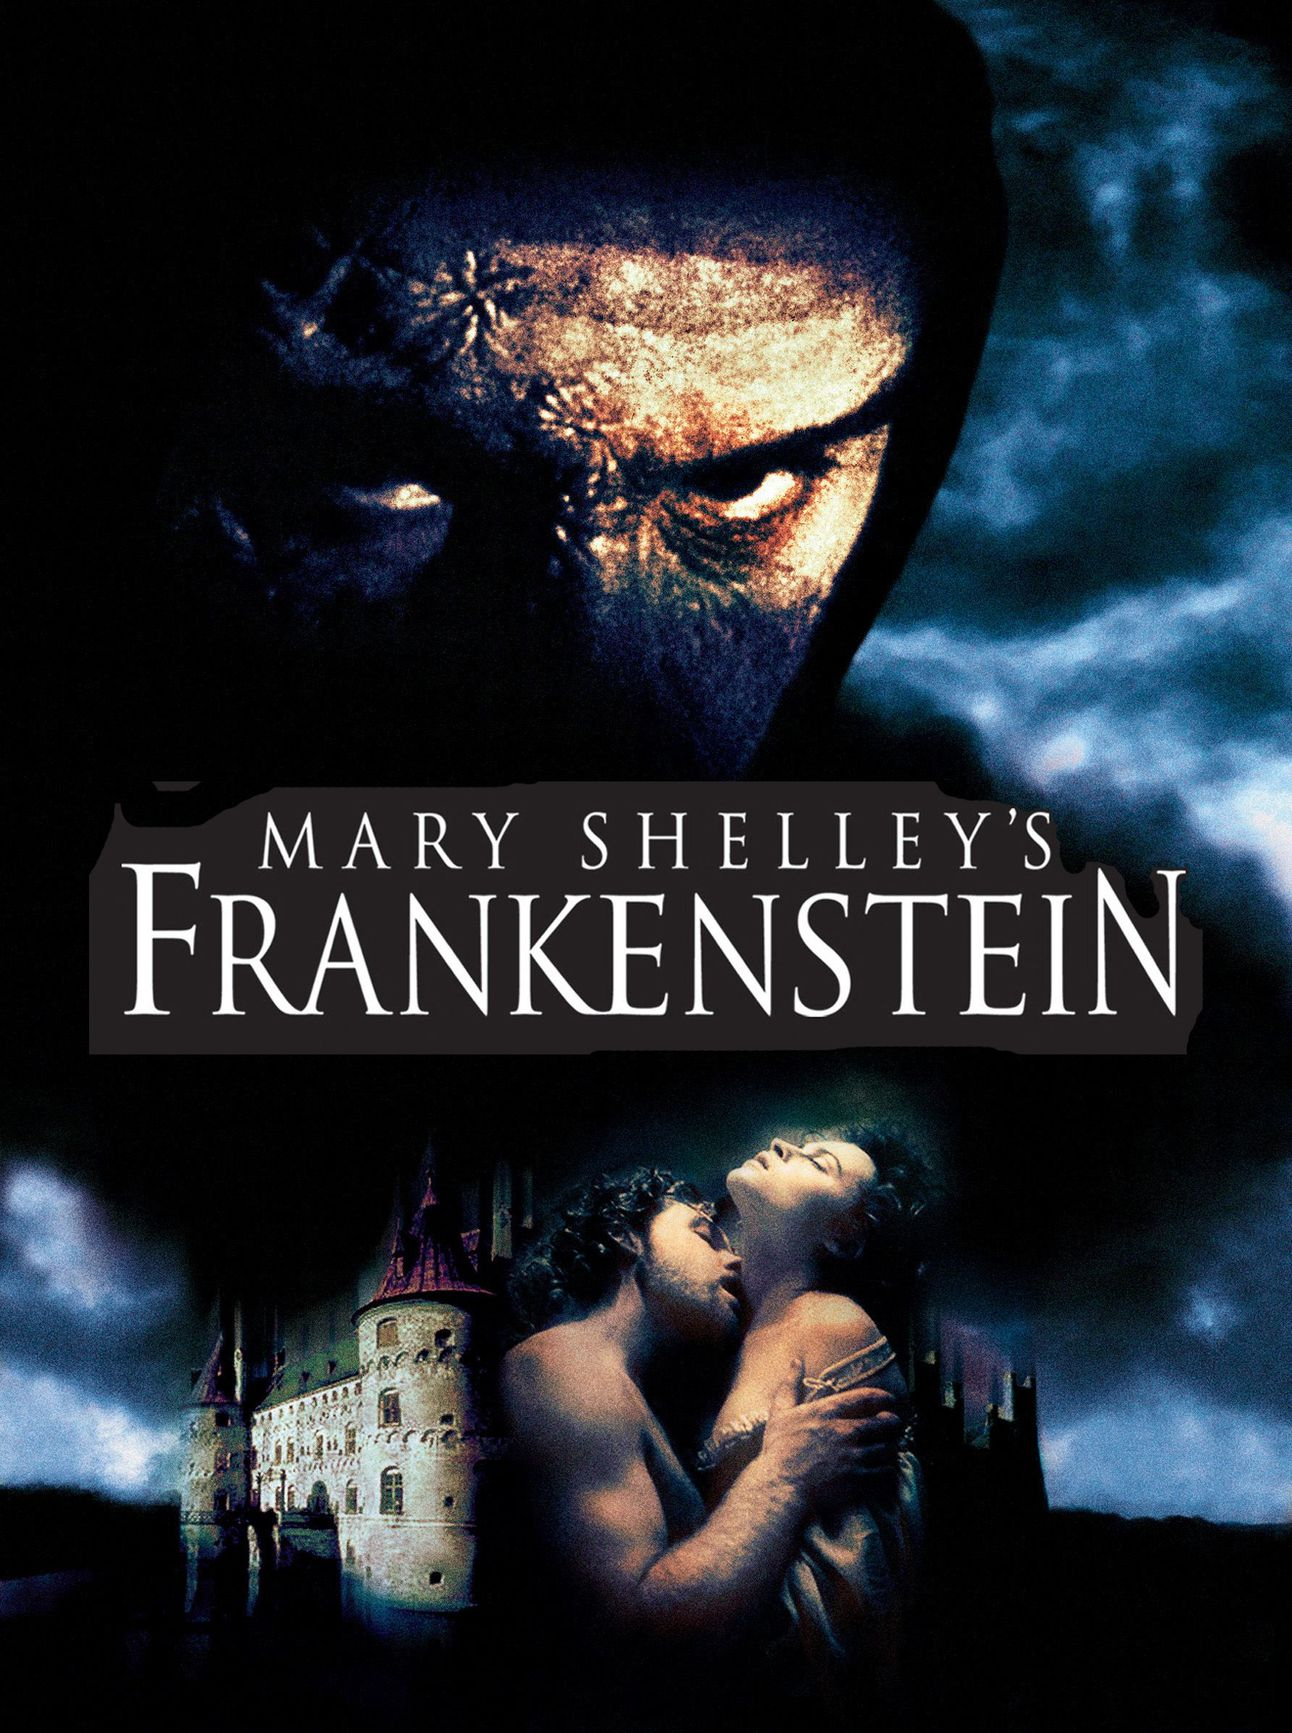 Mary Shelley's Frankenstein (1994) - Directed by: Kenneth BranaghStarring: Kenneth Branagh, Robert De Niro, Tom Hulce, Helena Bonham Carter, Ian Holm, Aidan Quinn, John CleeseRated: R for Horrific ImagesRunning Time: 2 h 3 mTMM Score: 1.5 stars out of 5STRENGTHS: Production Design, Basic StoryWEAKNESSES: Acting, Dialogue, Weird Story Additions, Pacing